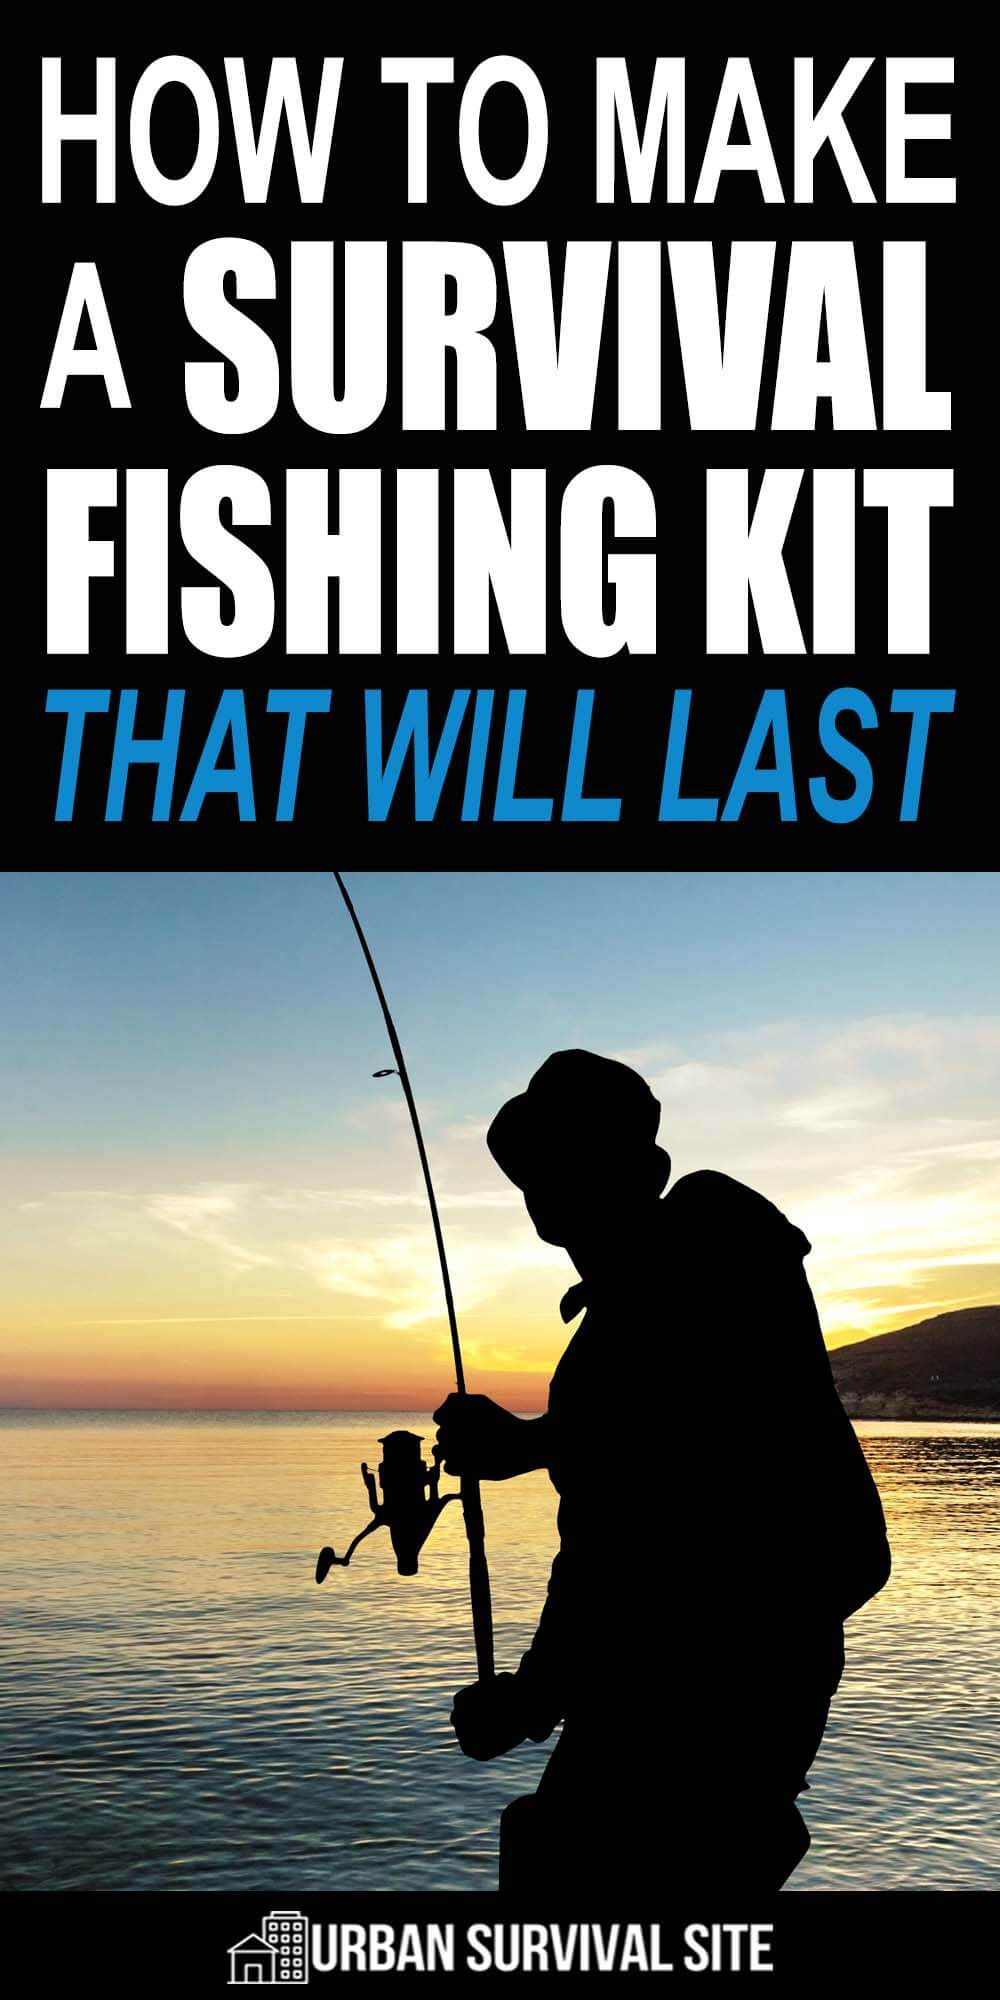 How To Make A Survival Fishing Kit That Will Last